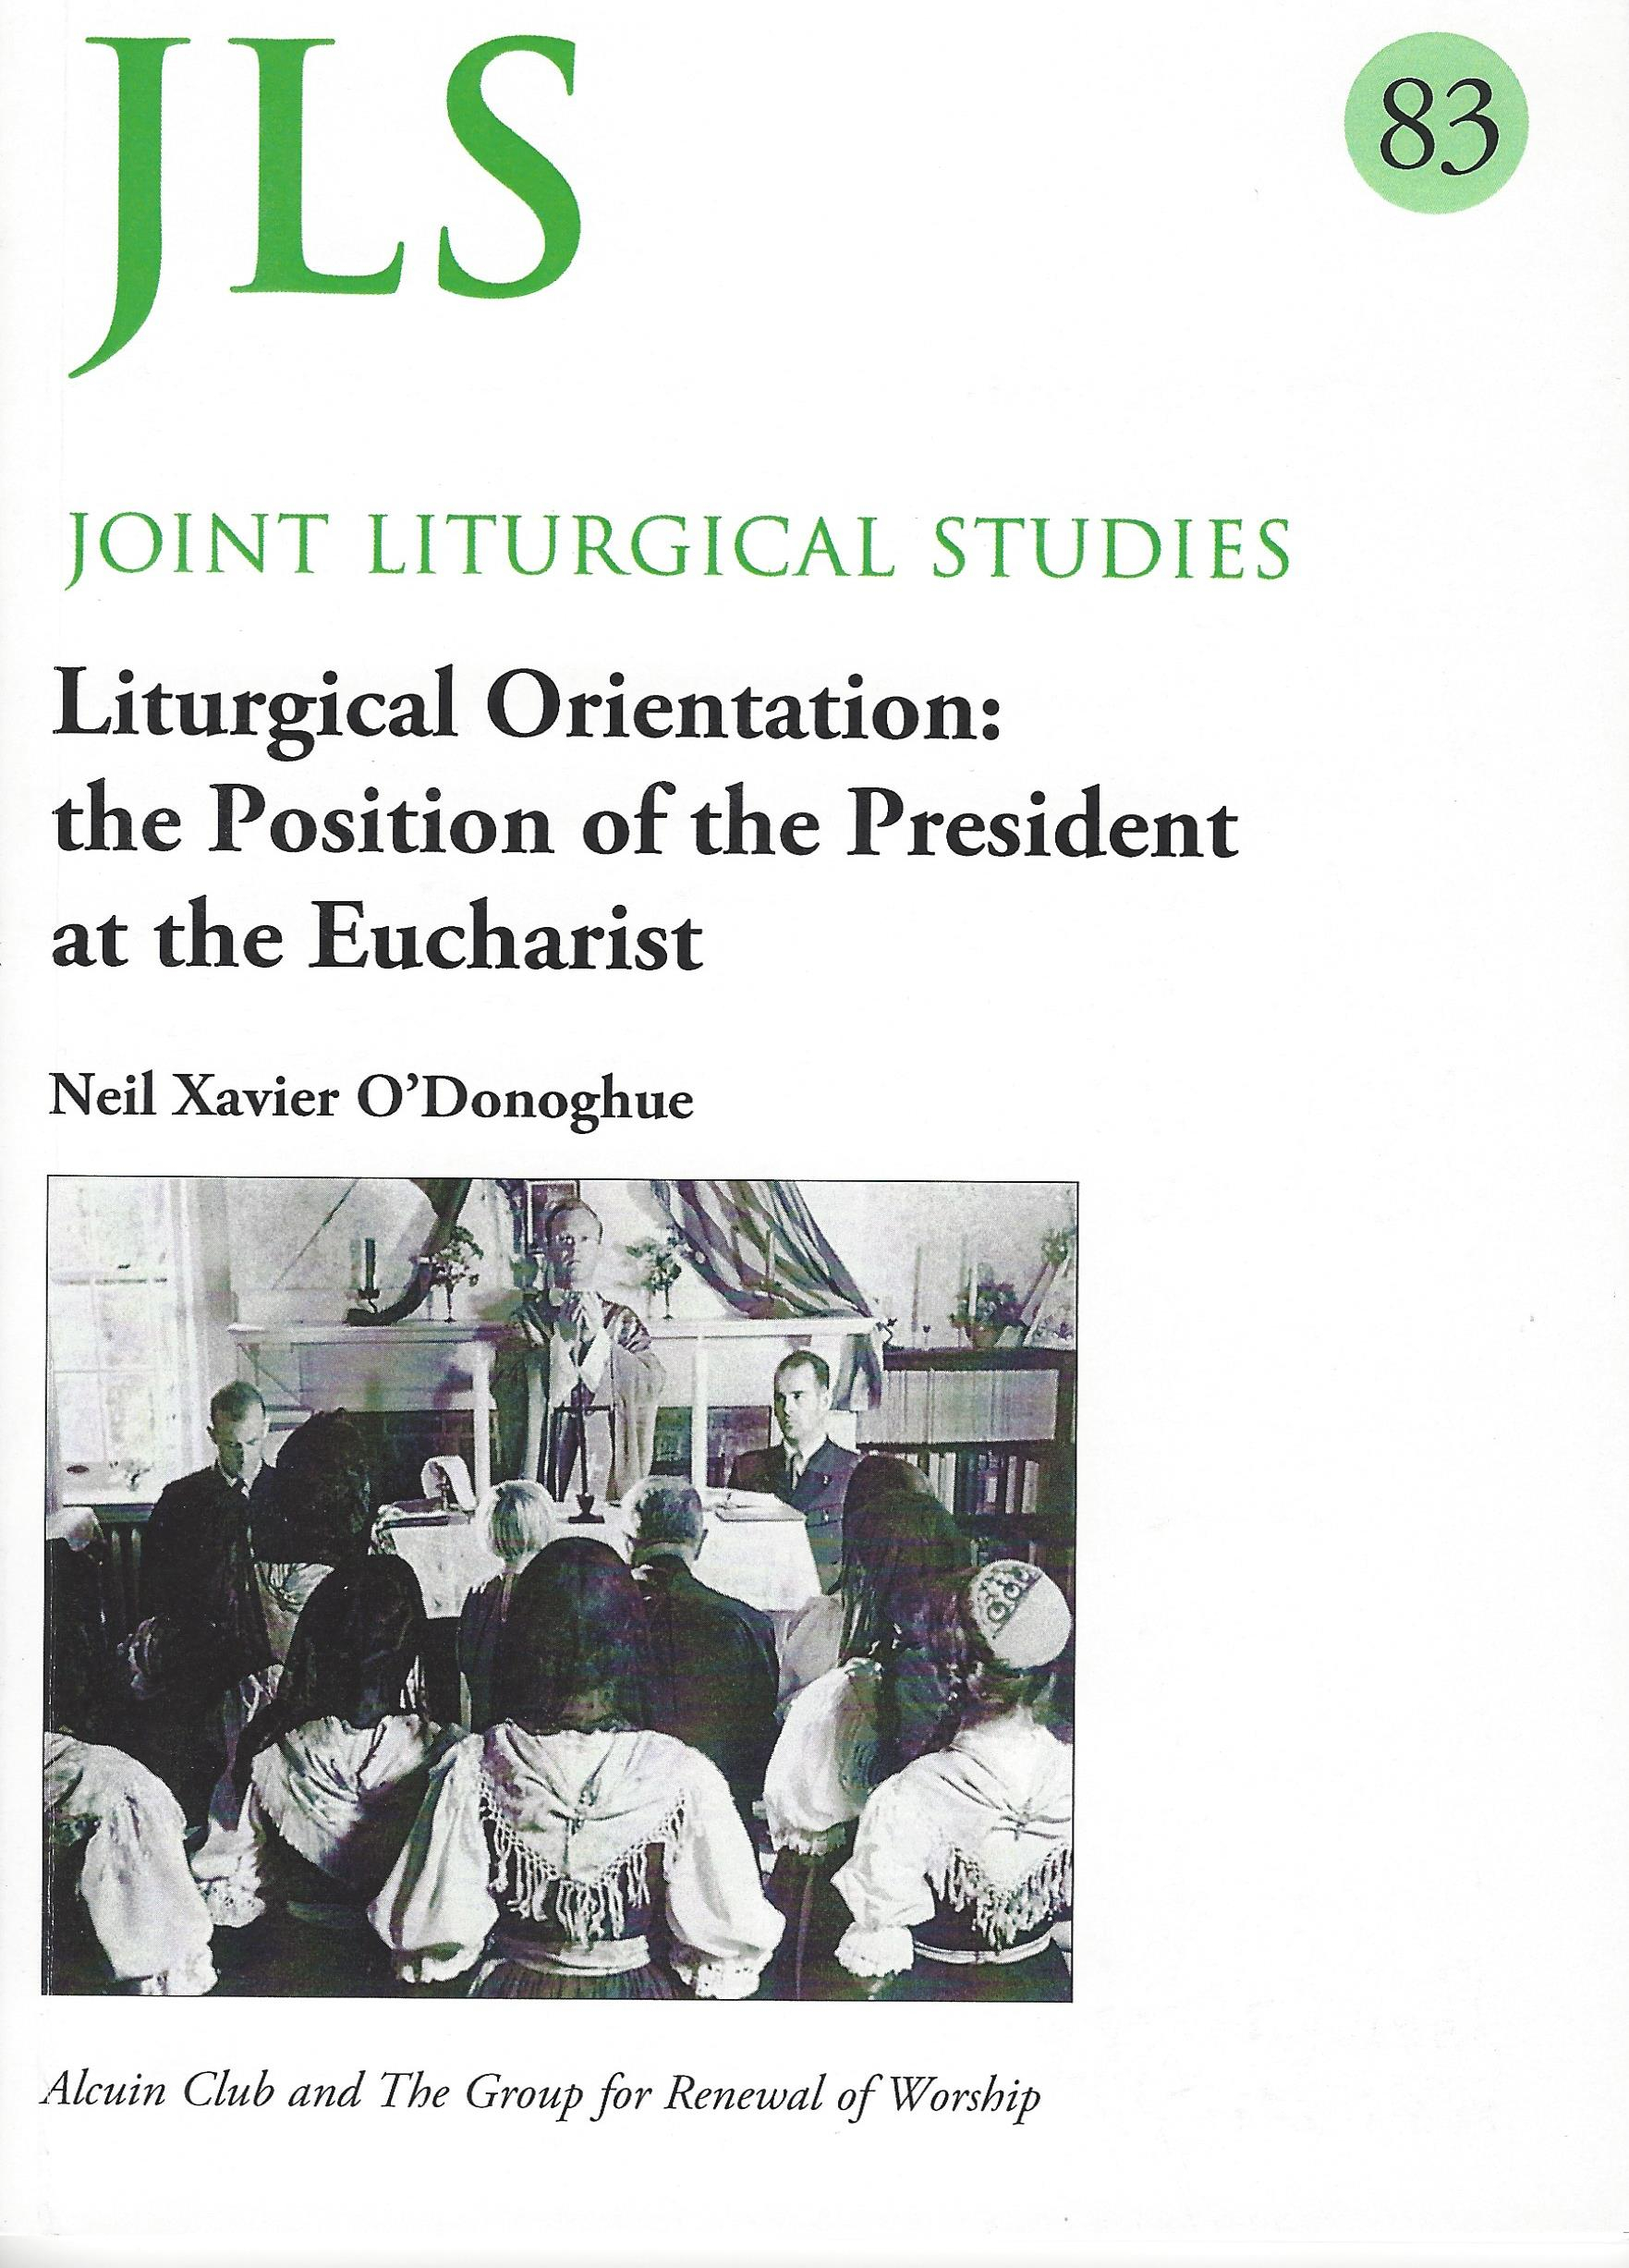 Liturgical Orientation: the Position of the President at the Eucharist